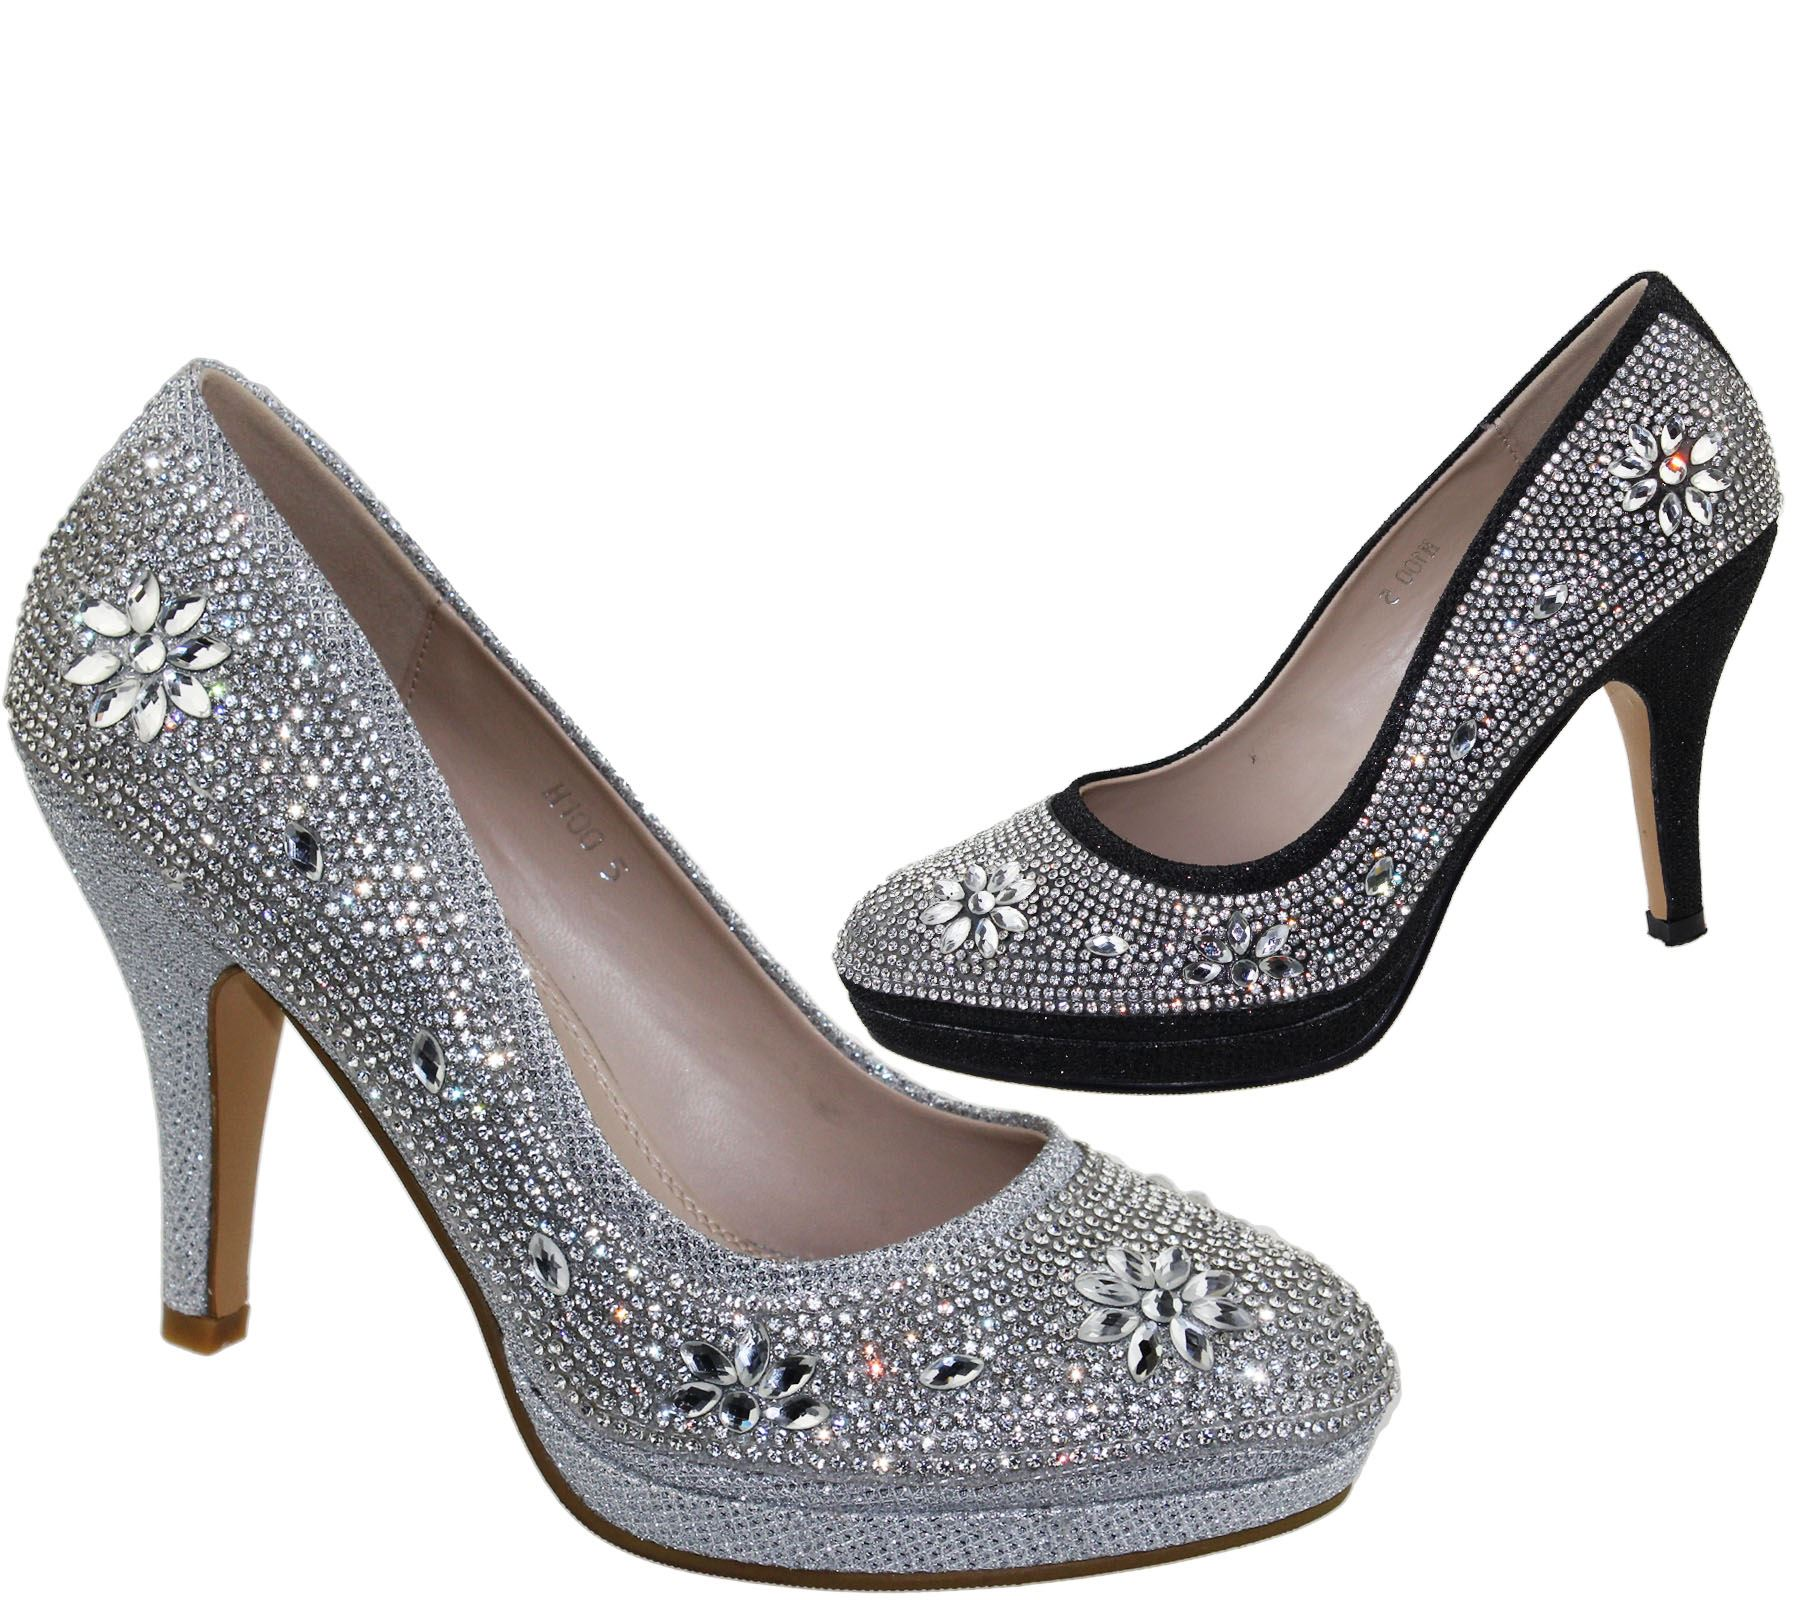 Bridal Shoes Auckland New Zealand: Womens Platforms High Heels Wedding Bridal Evening